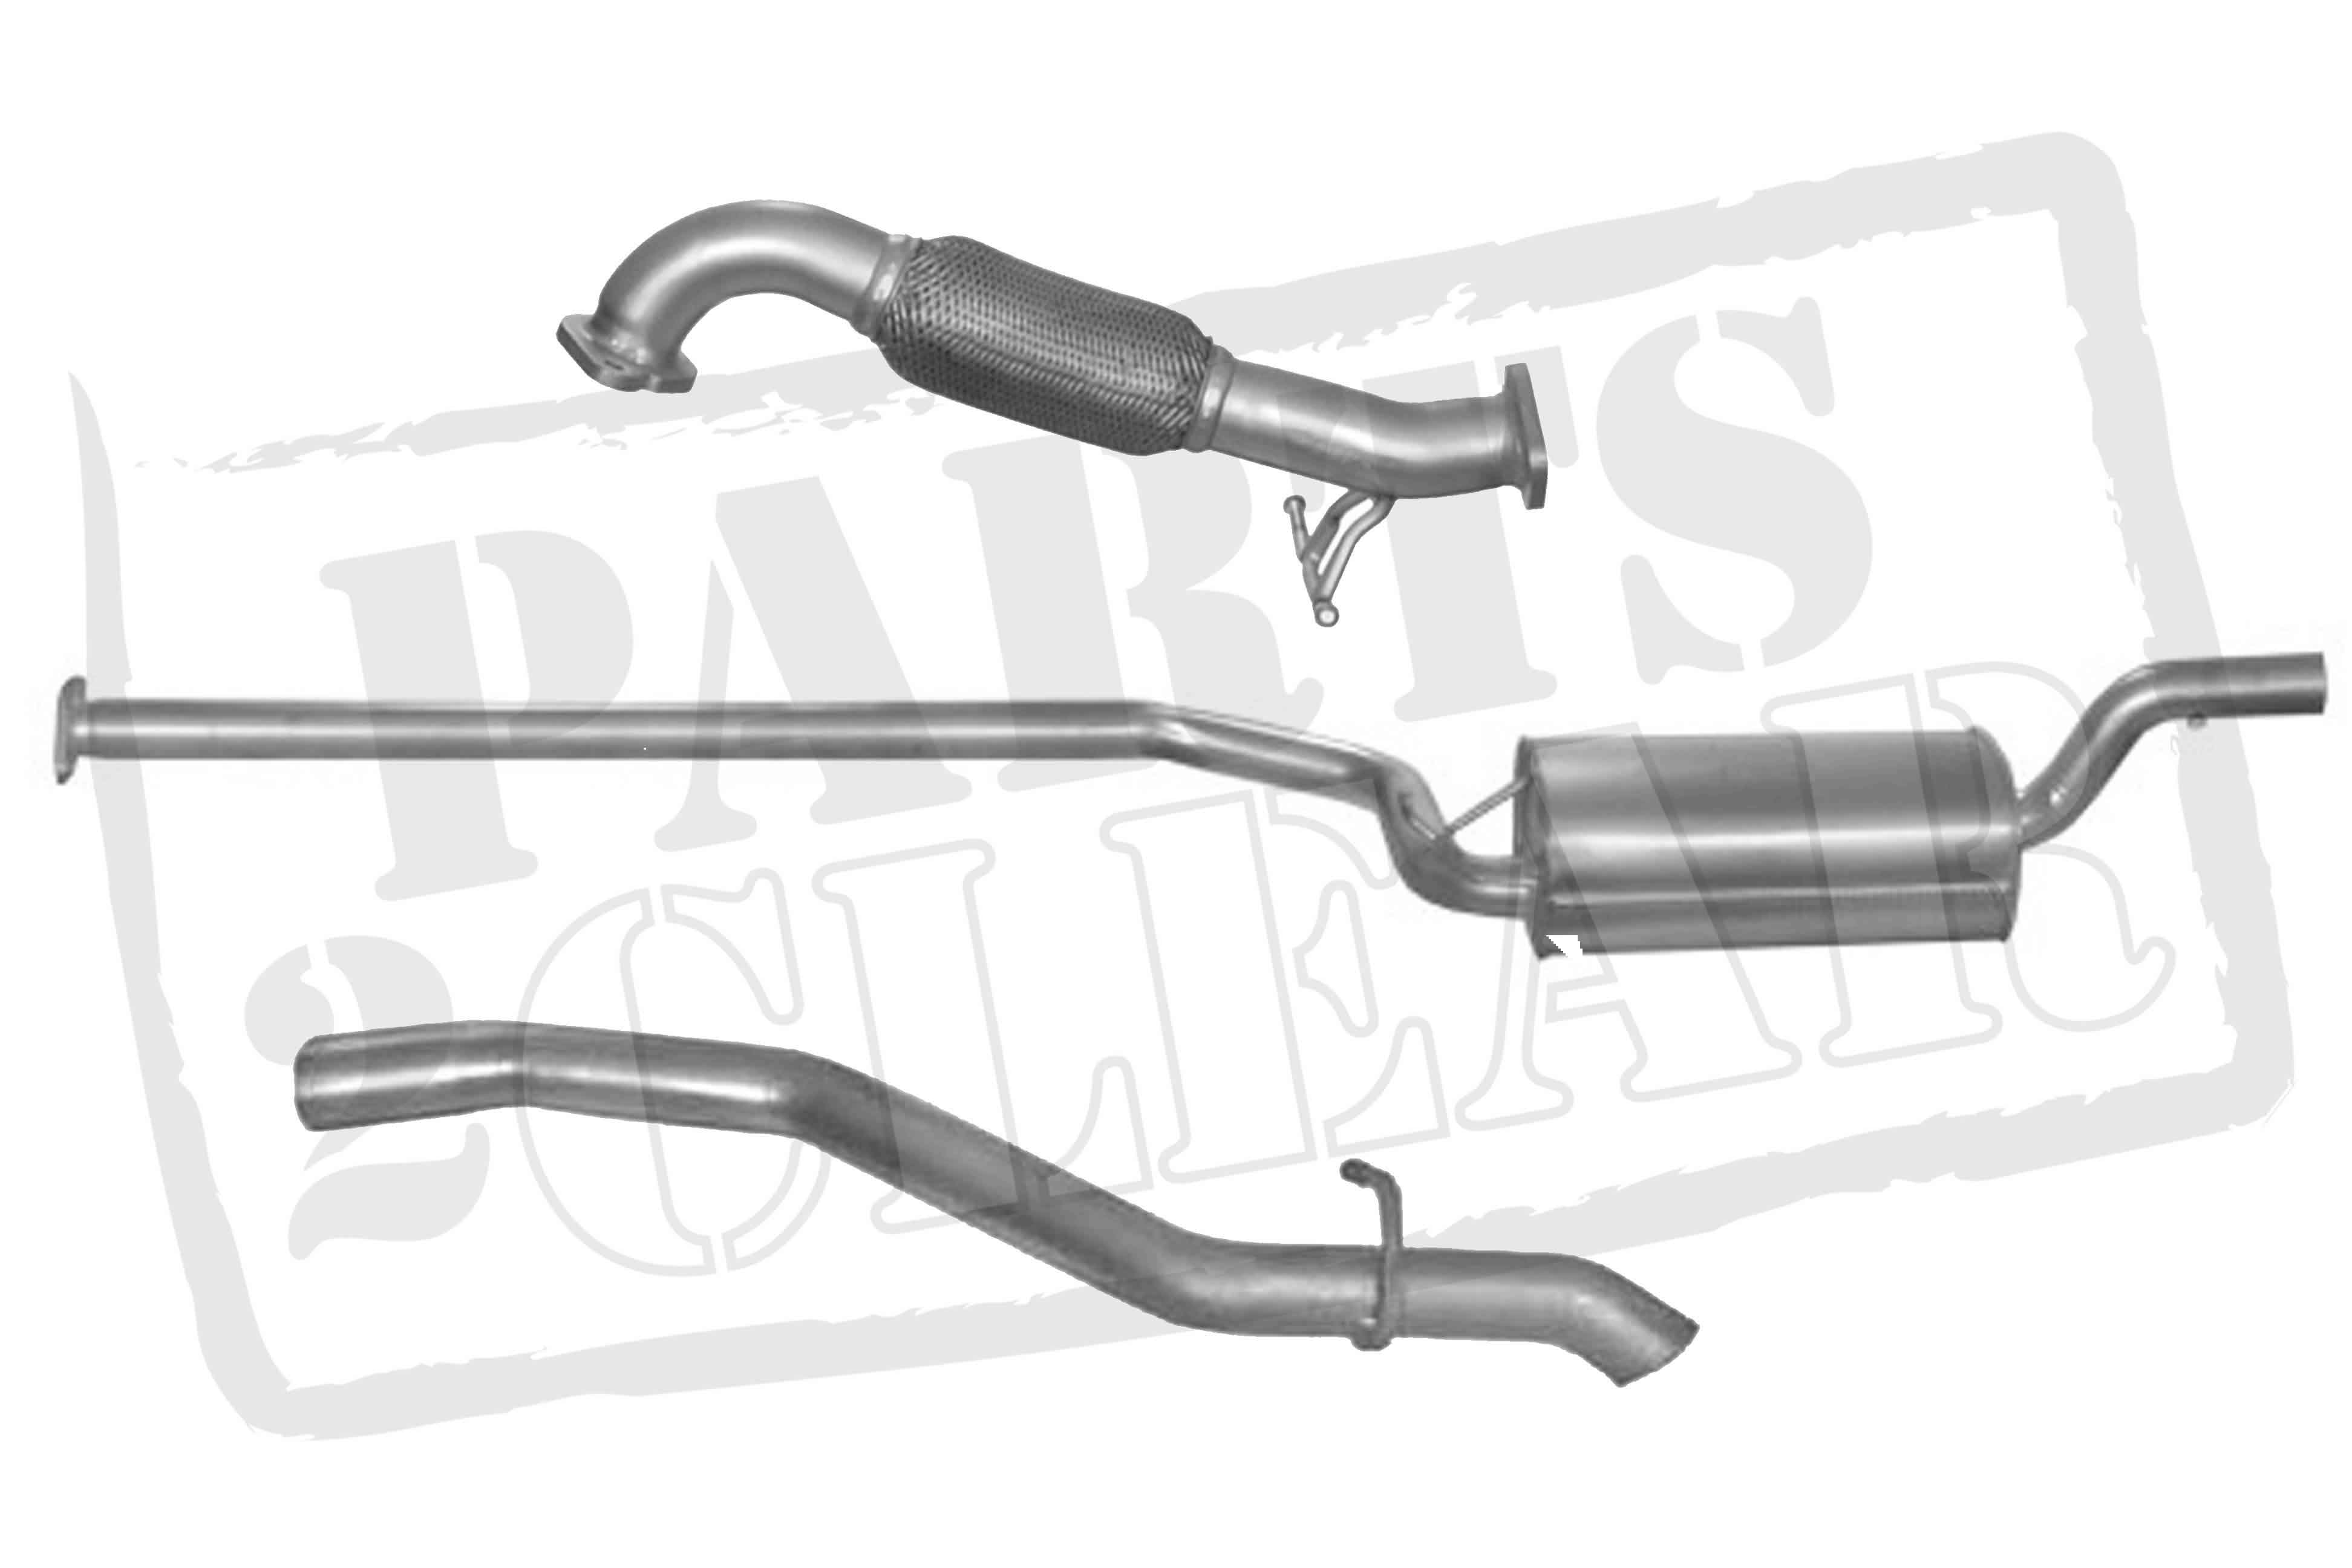 Ford Focus 1.6 Tdci Front Centre Rear Full Exhaust System